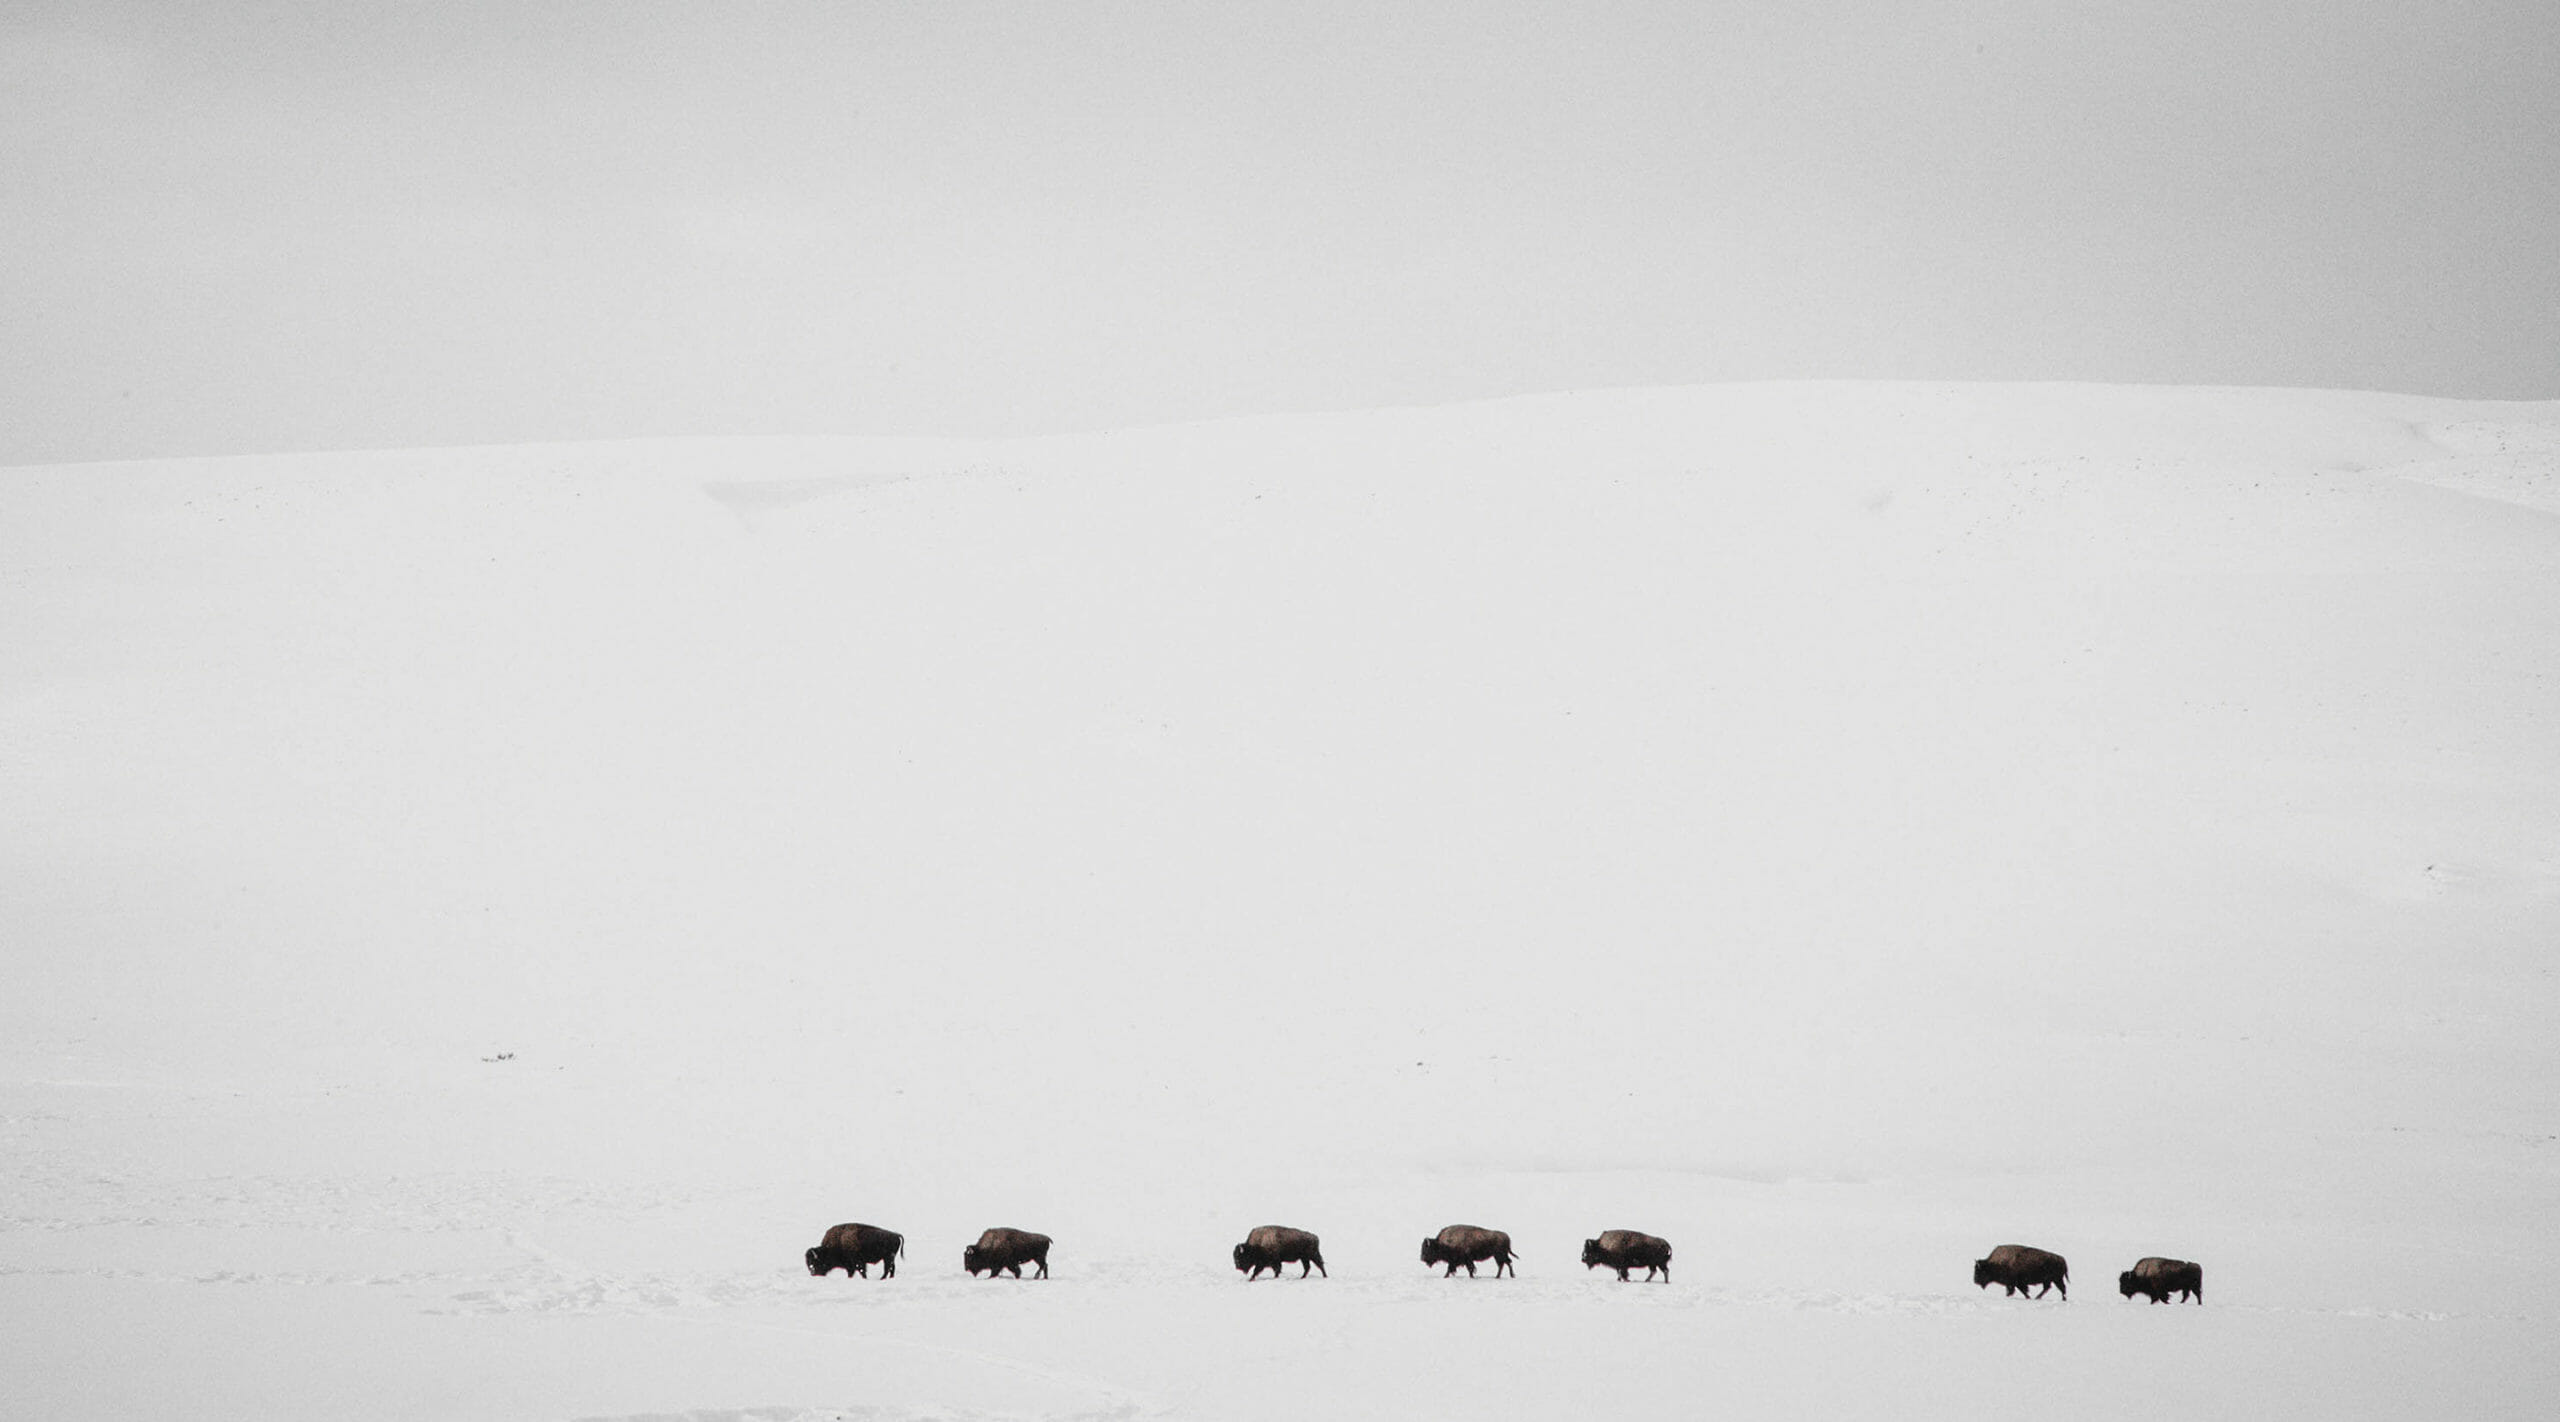 A Herd Of Bison Travel Across A Vast Snowy Landscape In Hayden Valley In Yellowstone National Park